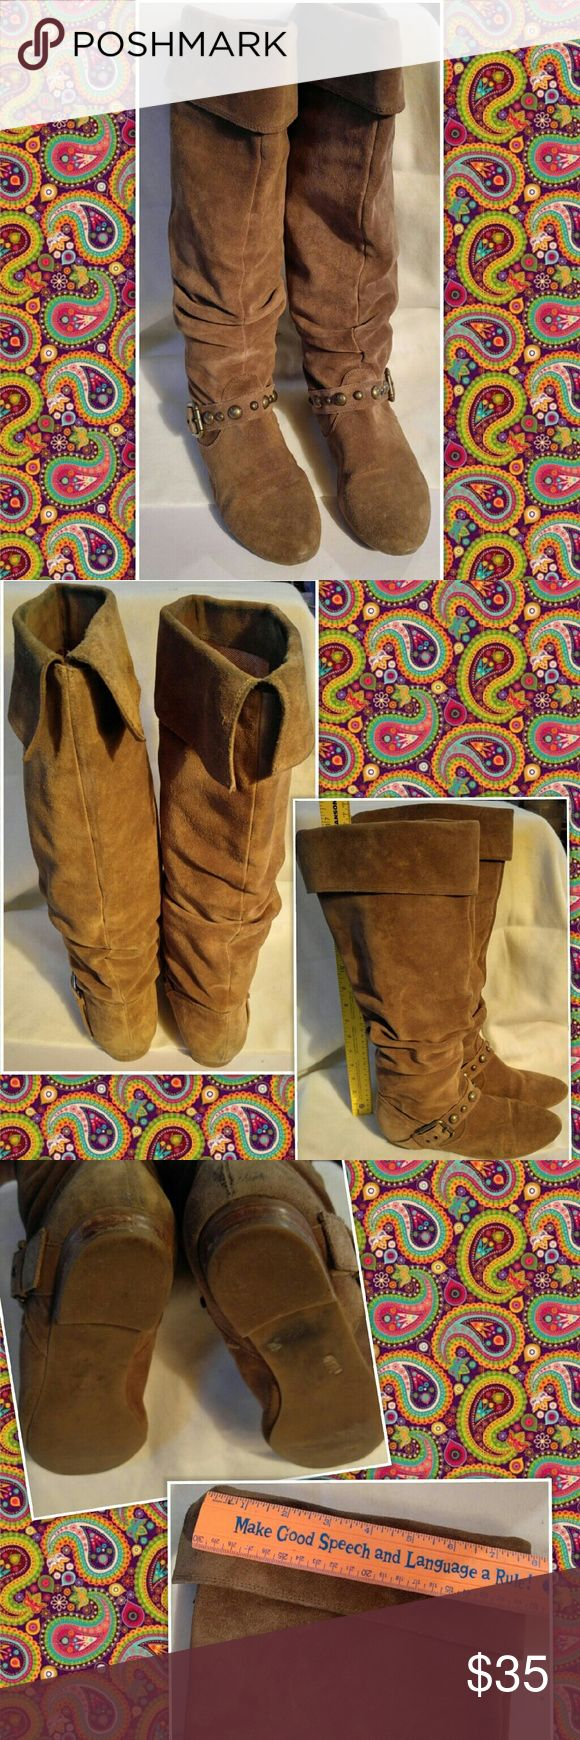 "Jessica Simpson BARG TALL BOOTS TAN BROWN SUEDE Jessica Simpson  BARG  TALL BOOTS  TAN BROWN SUEDE DUST SPLIT SUEDE Size 9 Approx 17"" TALL Gently used with lots of life left Jessica Simpson Shoes Over the Knee Boots"